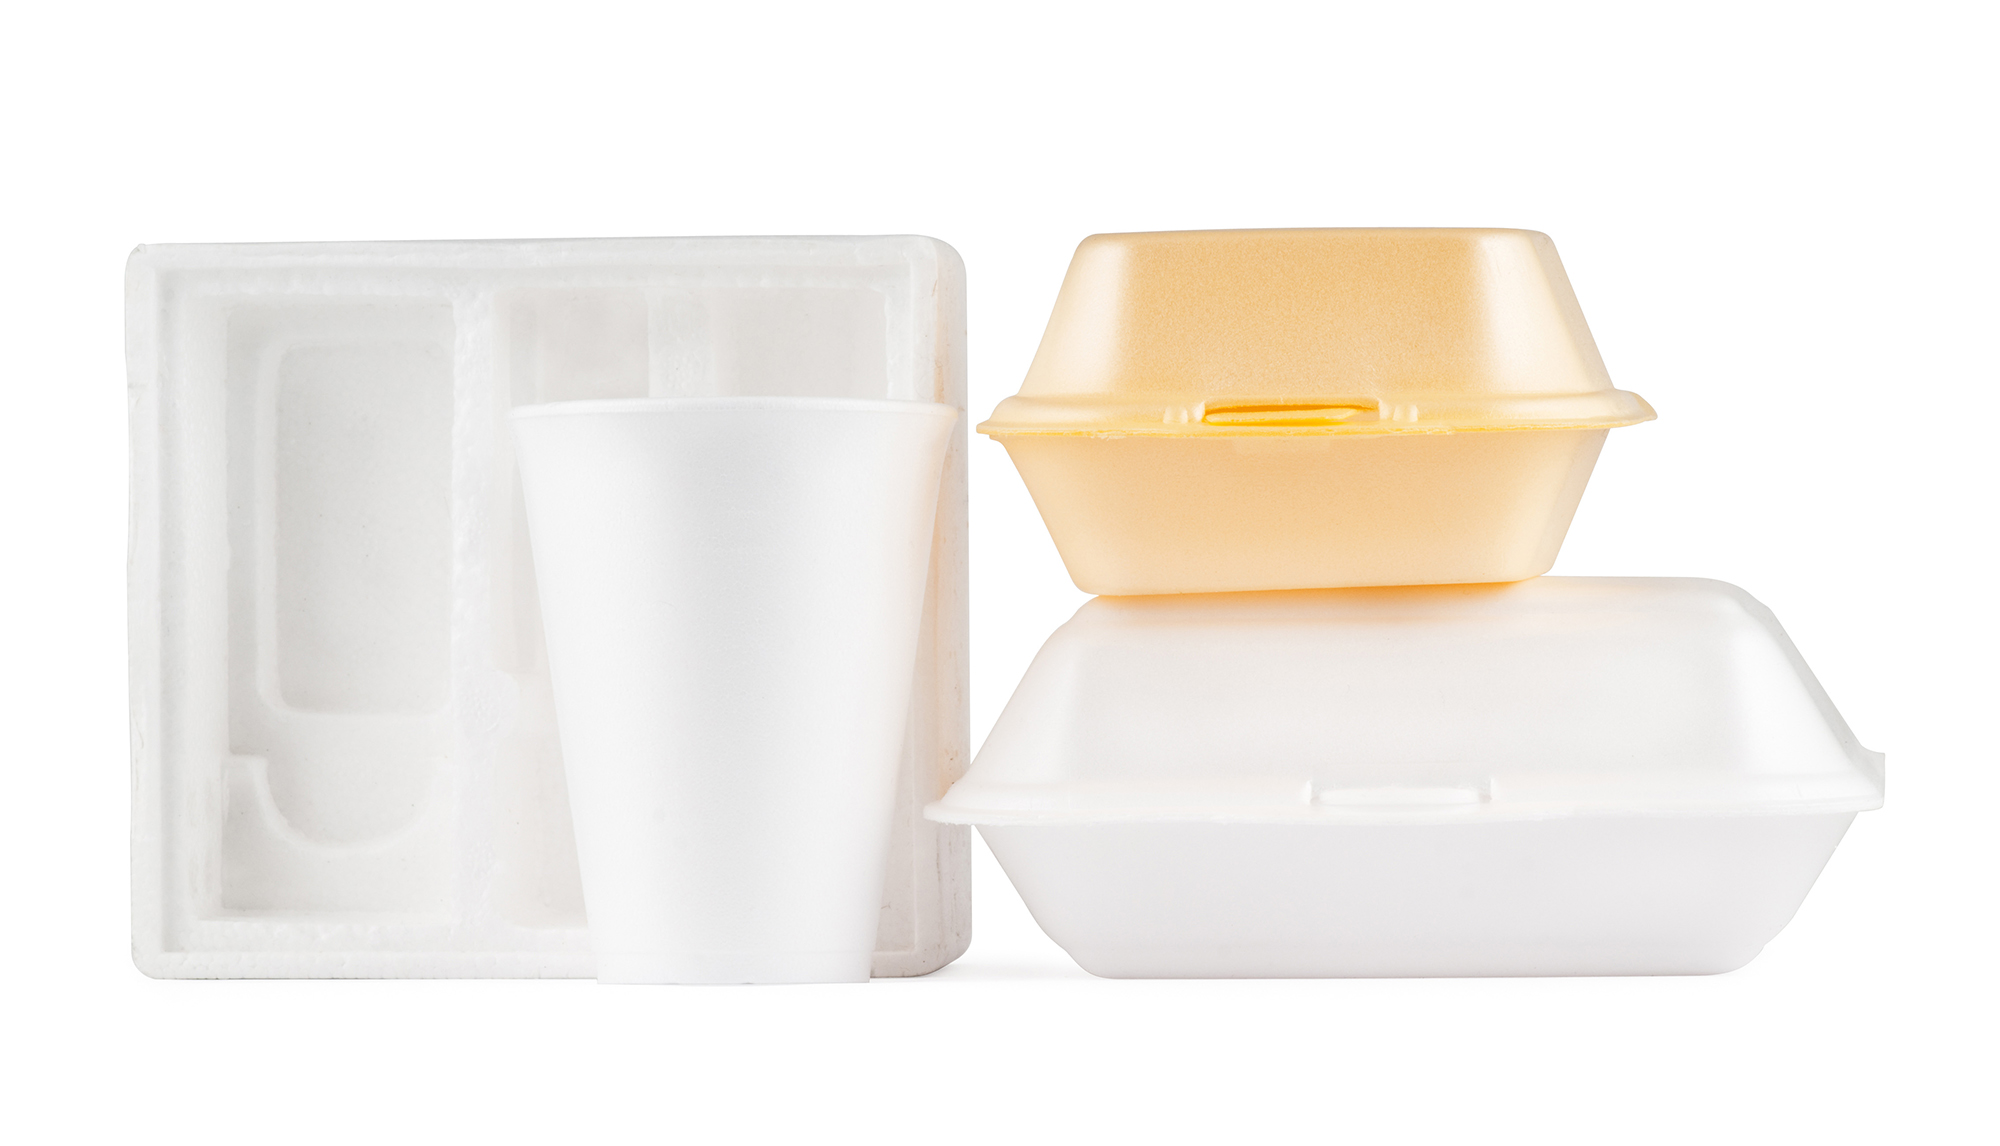 A selection of polystyrene including electronic packaging, cups, fast food containers and food trays, isolated on a pure white background